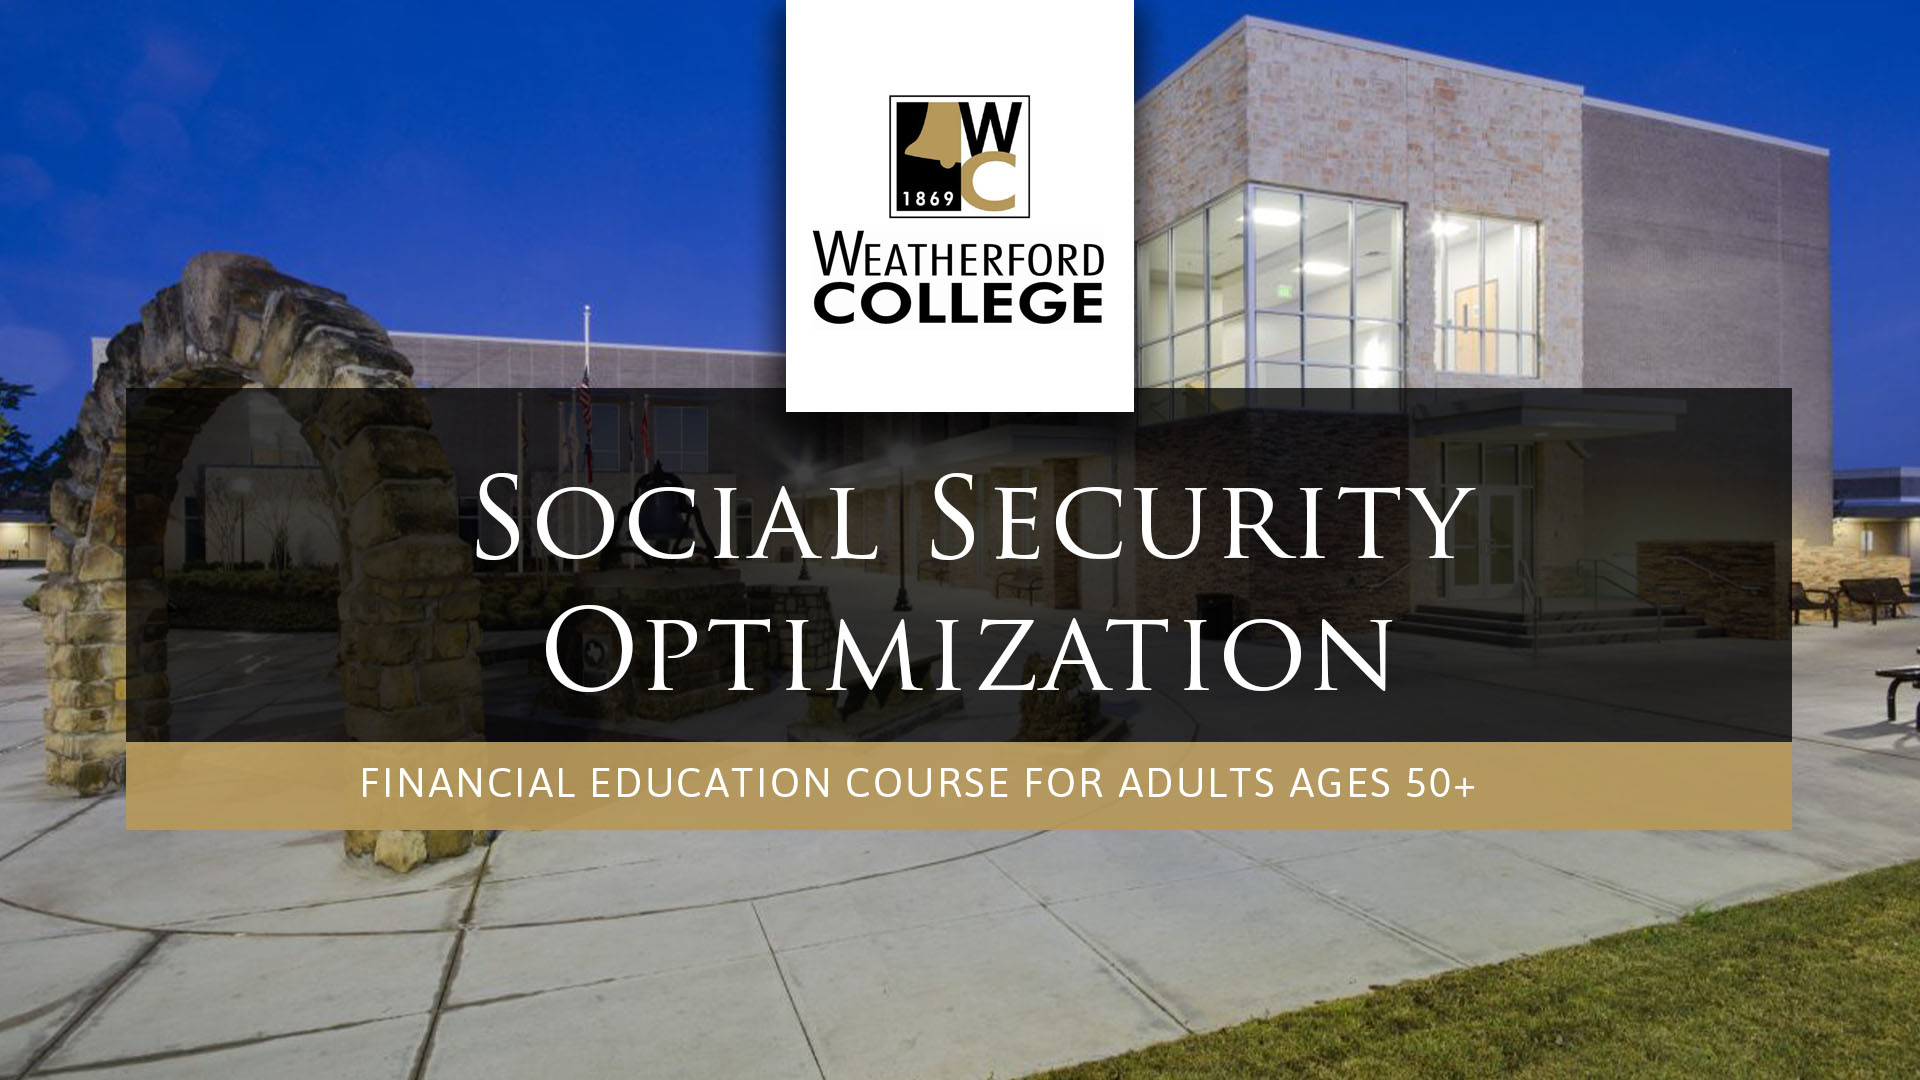 Strittmatter Wealth Management Group Fort Worth, Texas Social Security Optimization Financial Education Courses Weatherford Texas